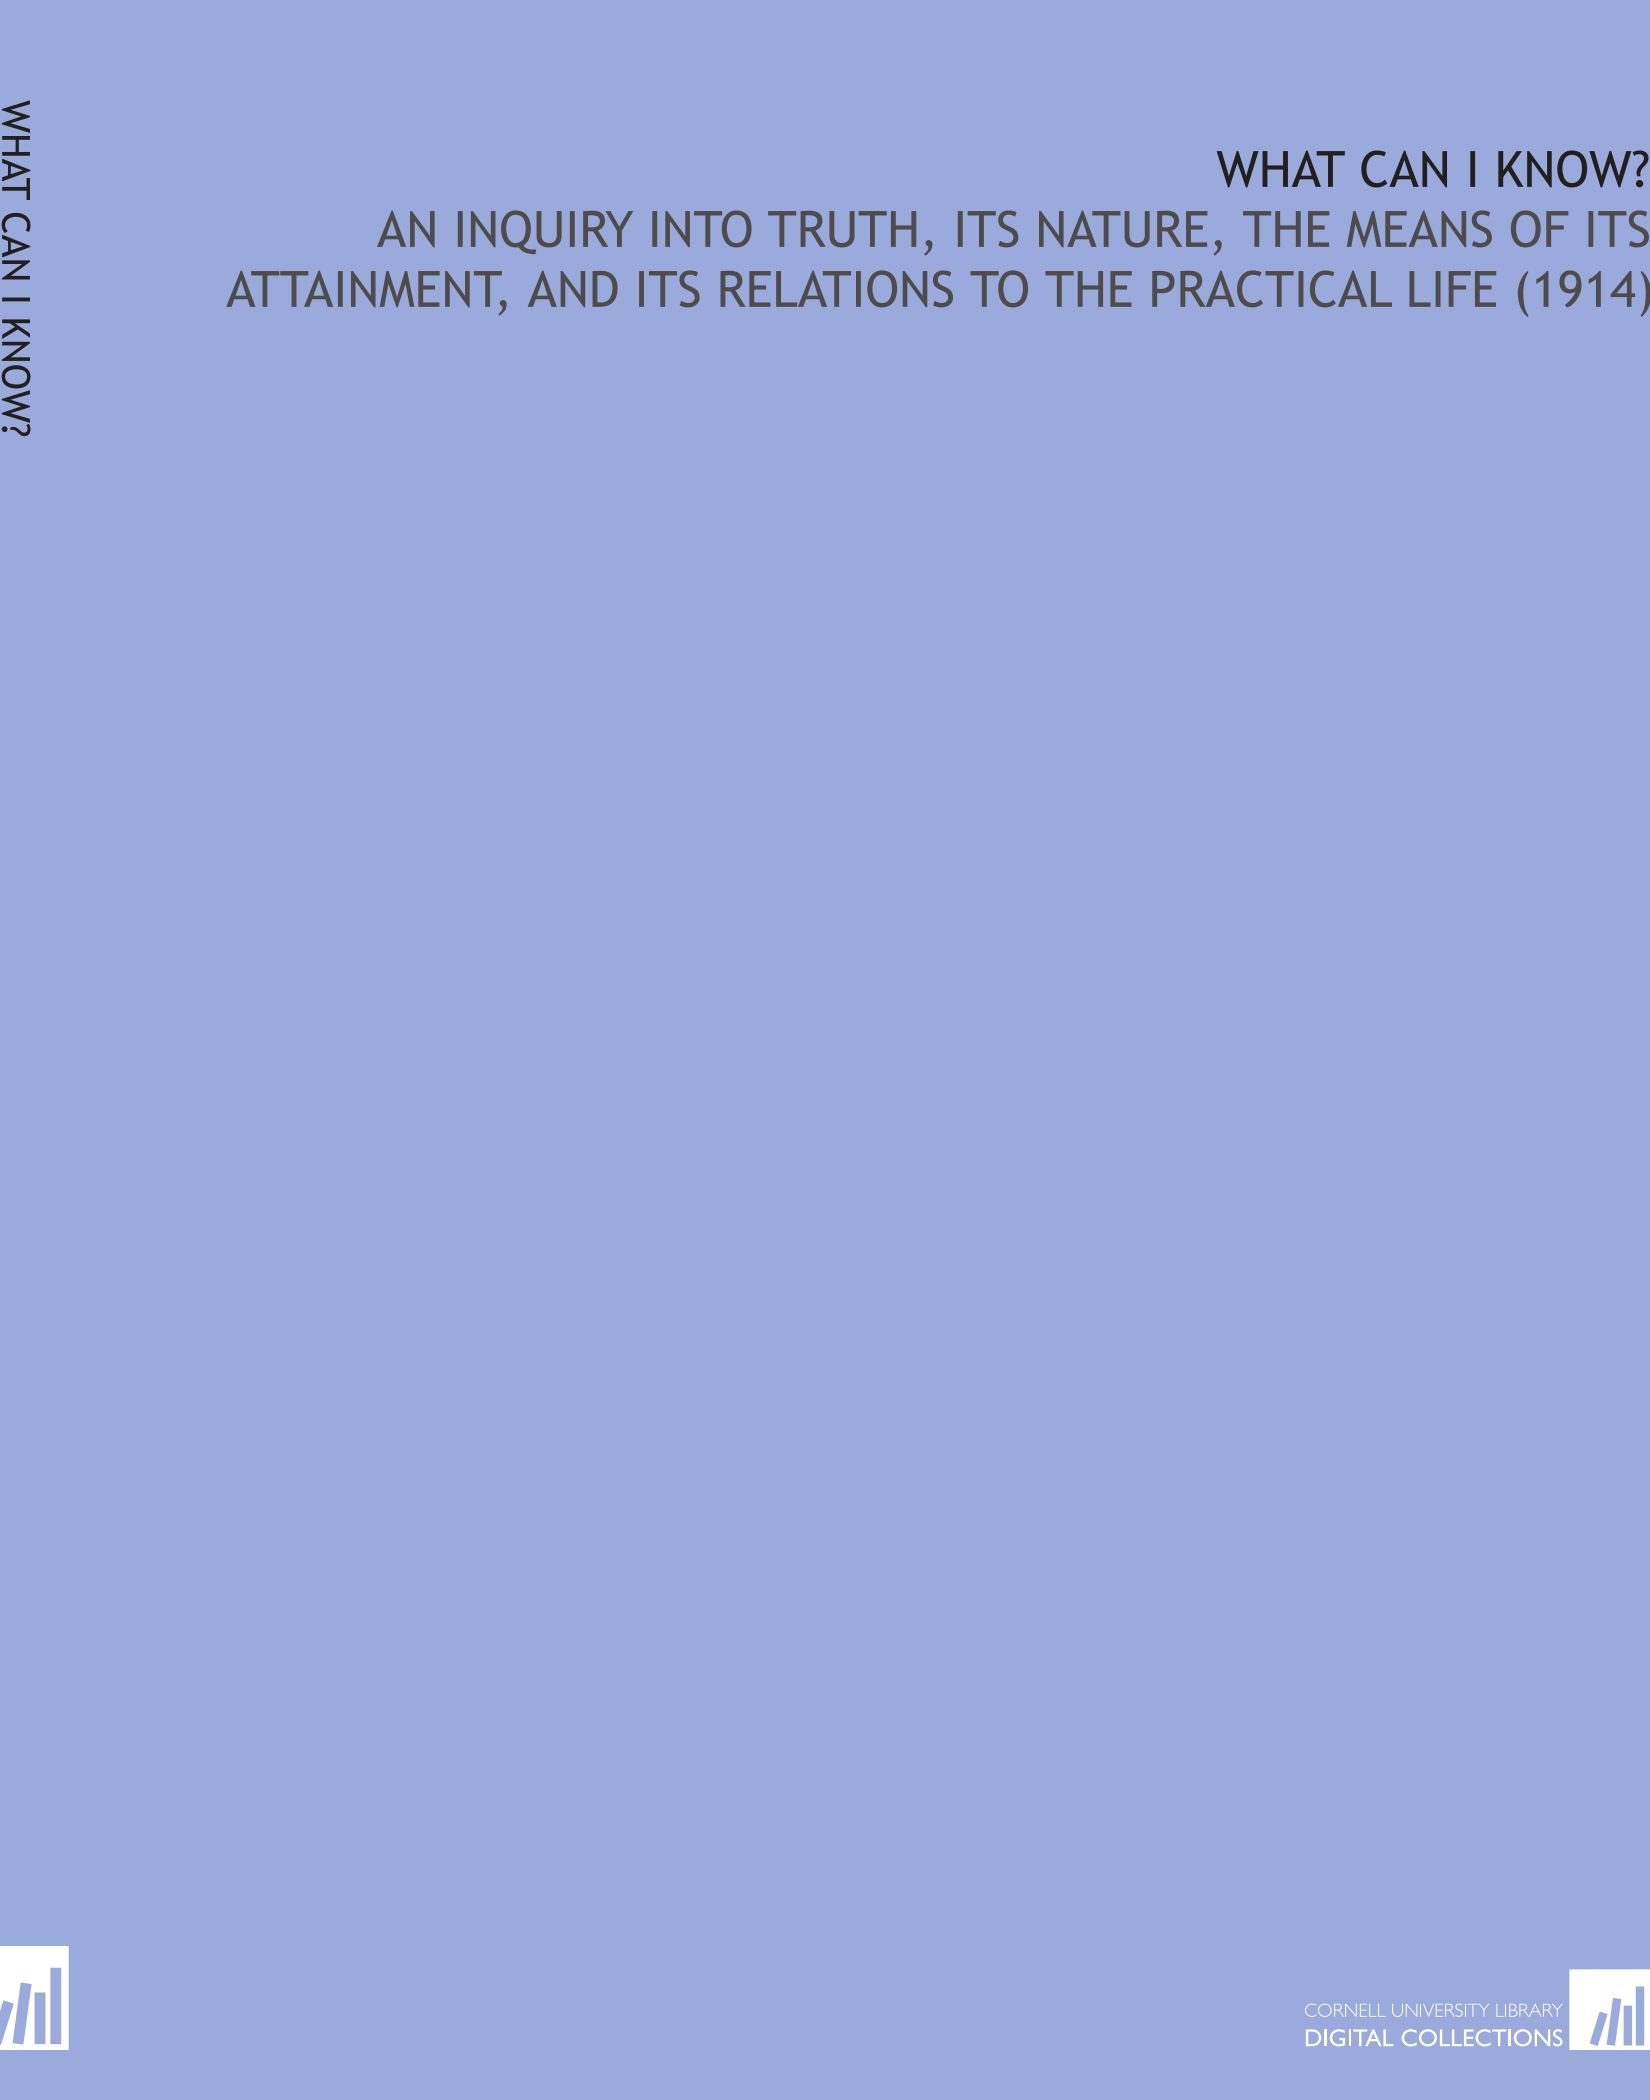 Download What Can I Know?: An Inquiry Into Truth, Its Nature, the Means of Its Attainment, and Its Relations to the Practical Life (1914) PDF